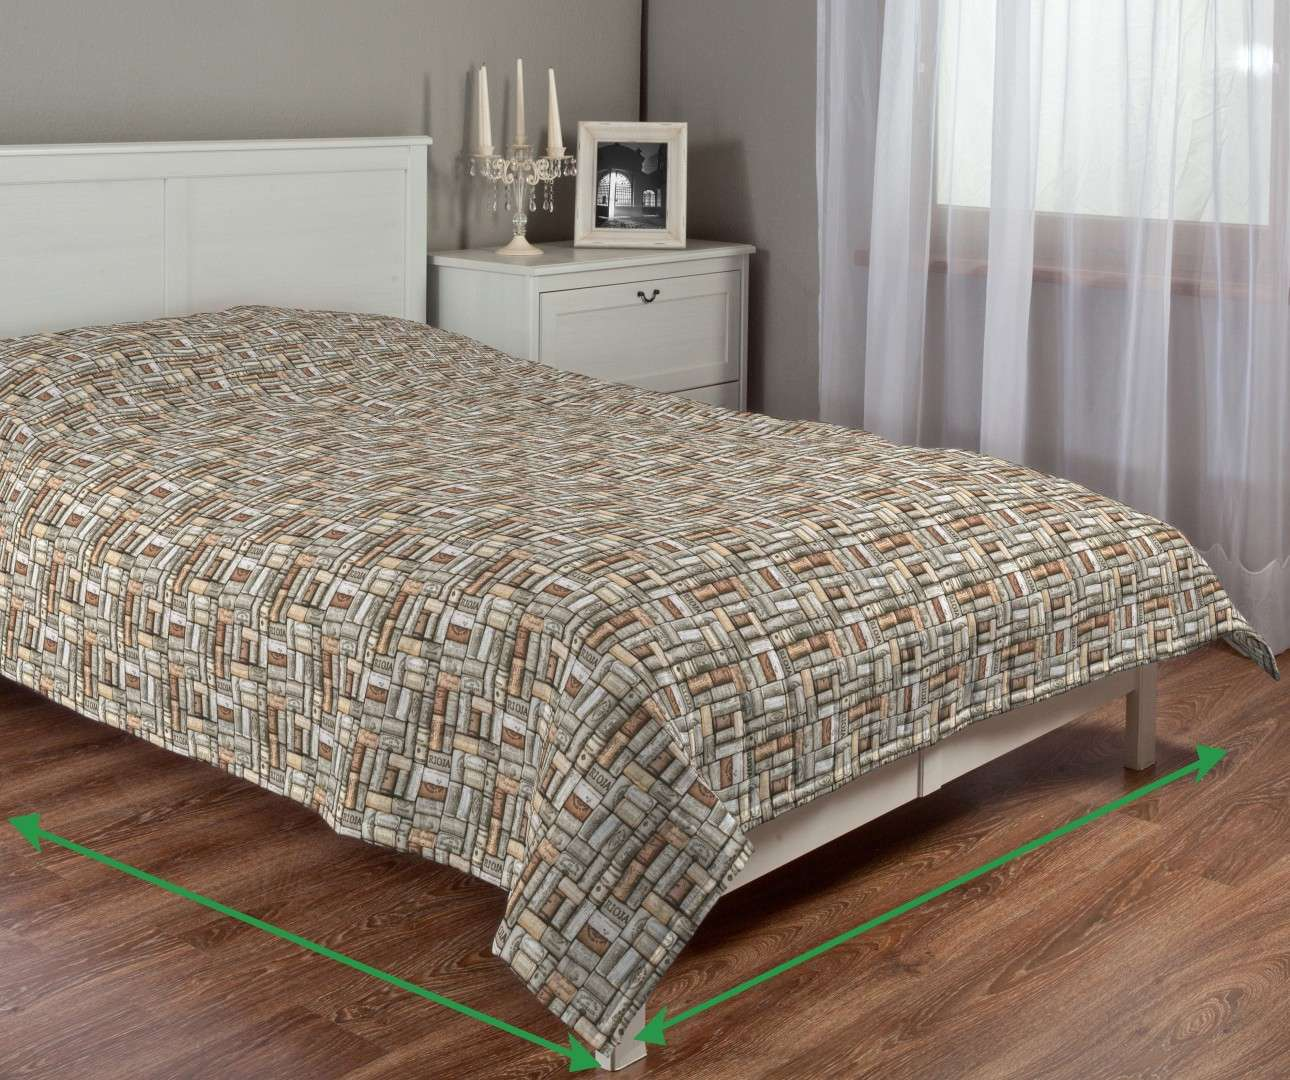 Quilted throw (vertical quilt pattern) in collection Marina, fabric: 140-13